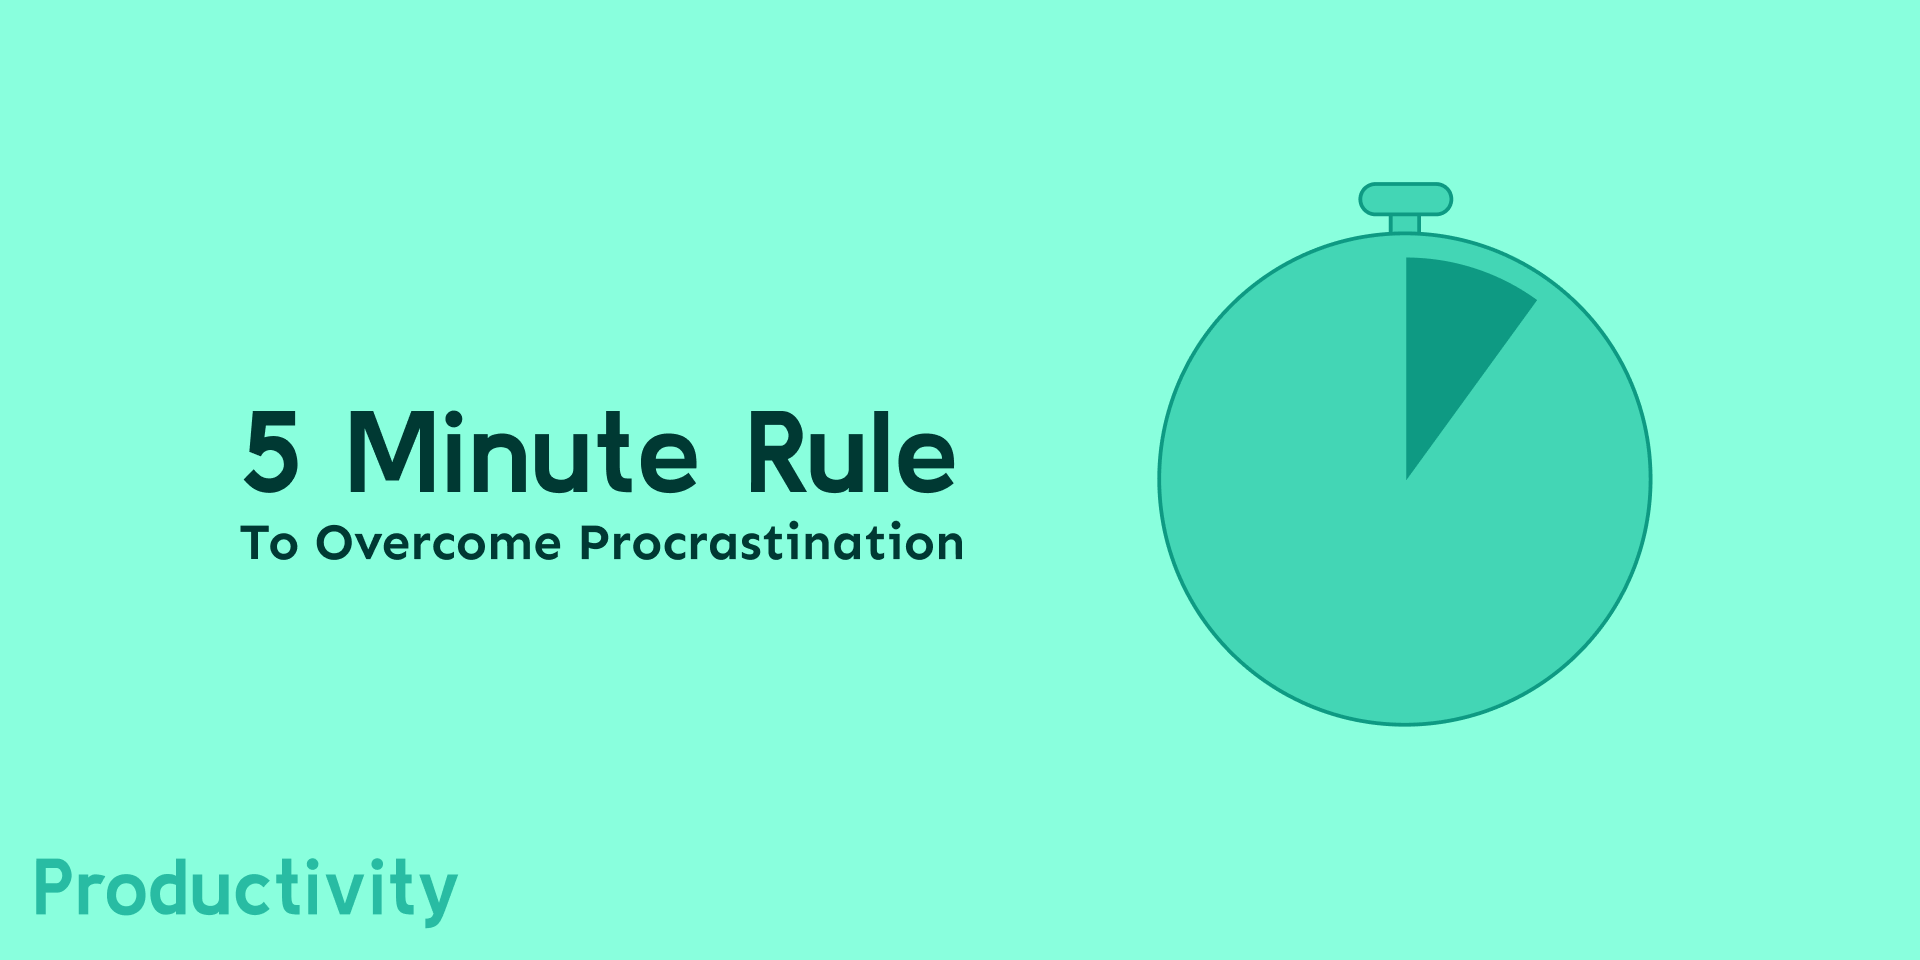 5 Minute Rule to Overcome Procrastination